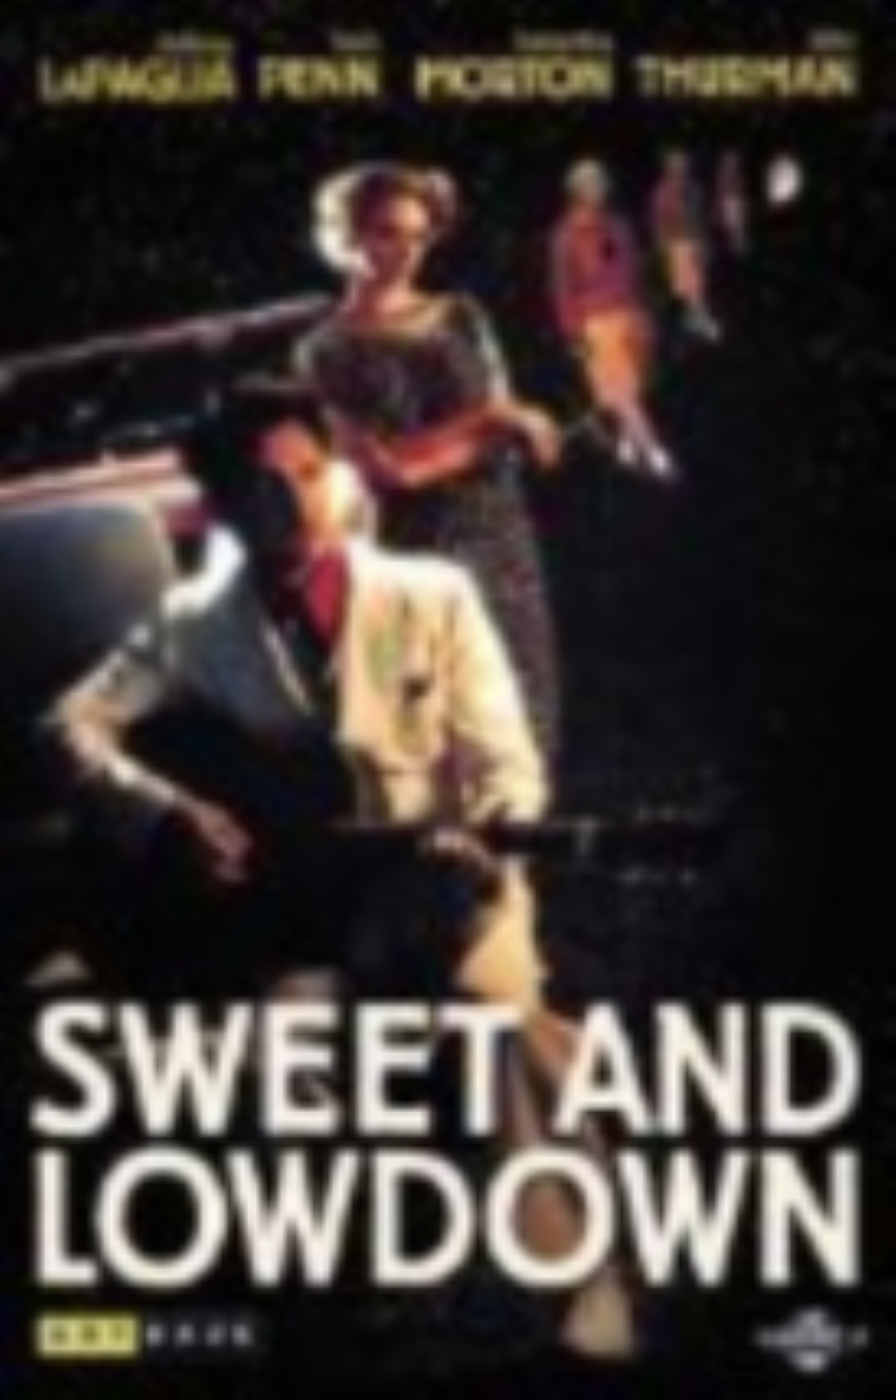 Sweet and Lowdown Vhs